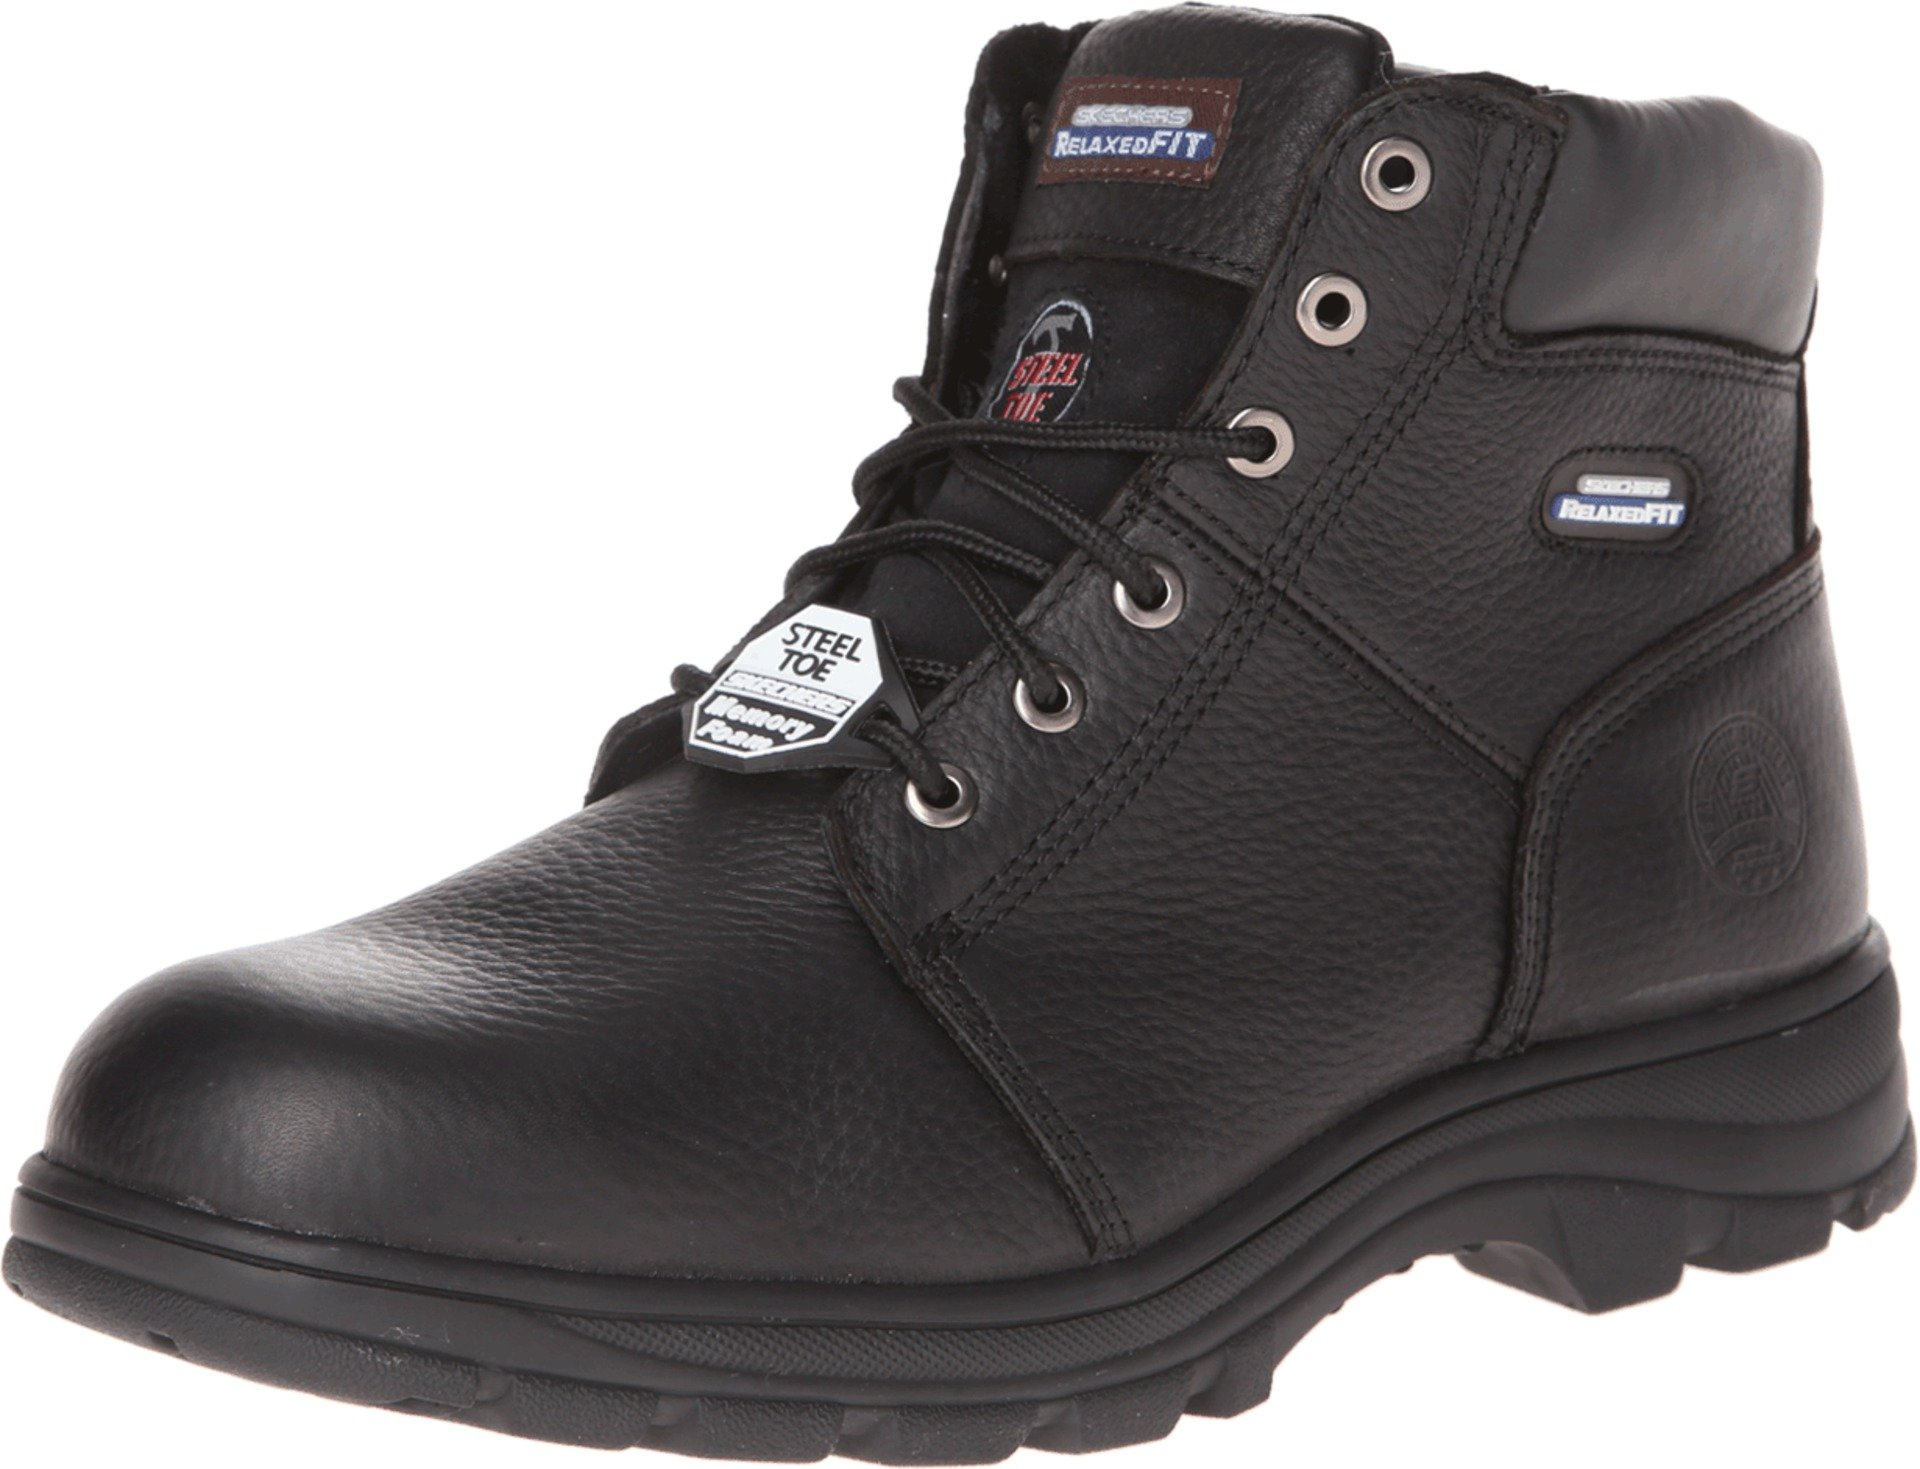 Skechers for Work Men's Workshire Relaxed Fit Work Steel Toe Boot,Black,10.5 M US